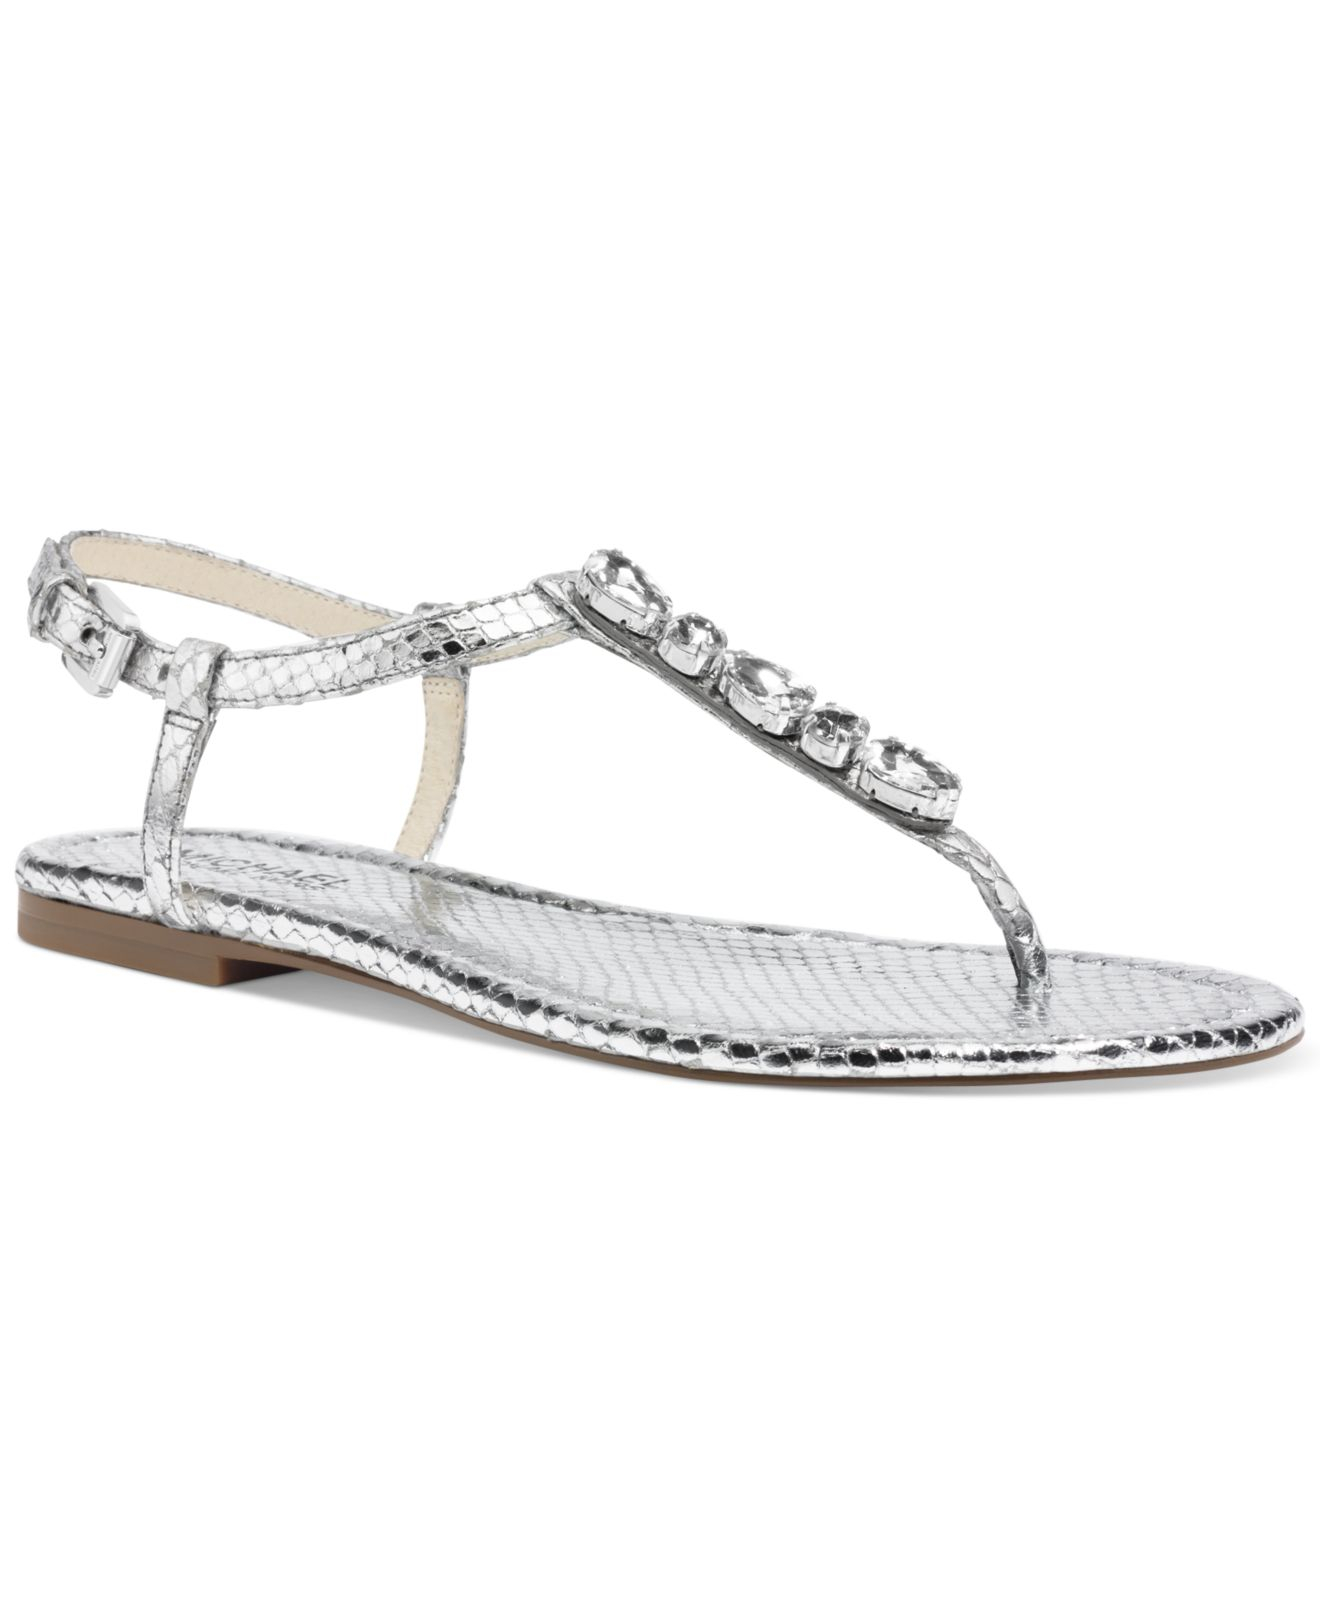 a592a1236ce Lyst - Michael Kors Michael Jayden Jeweled Flat Thong Sandals in ...